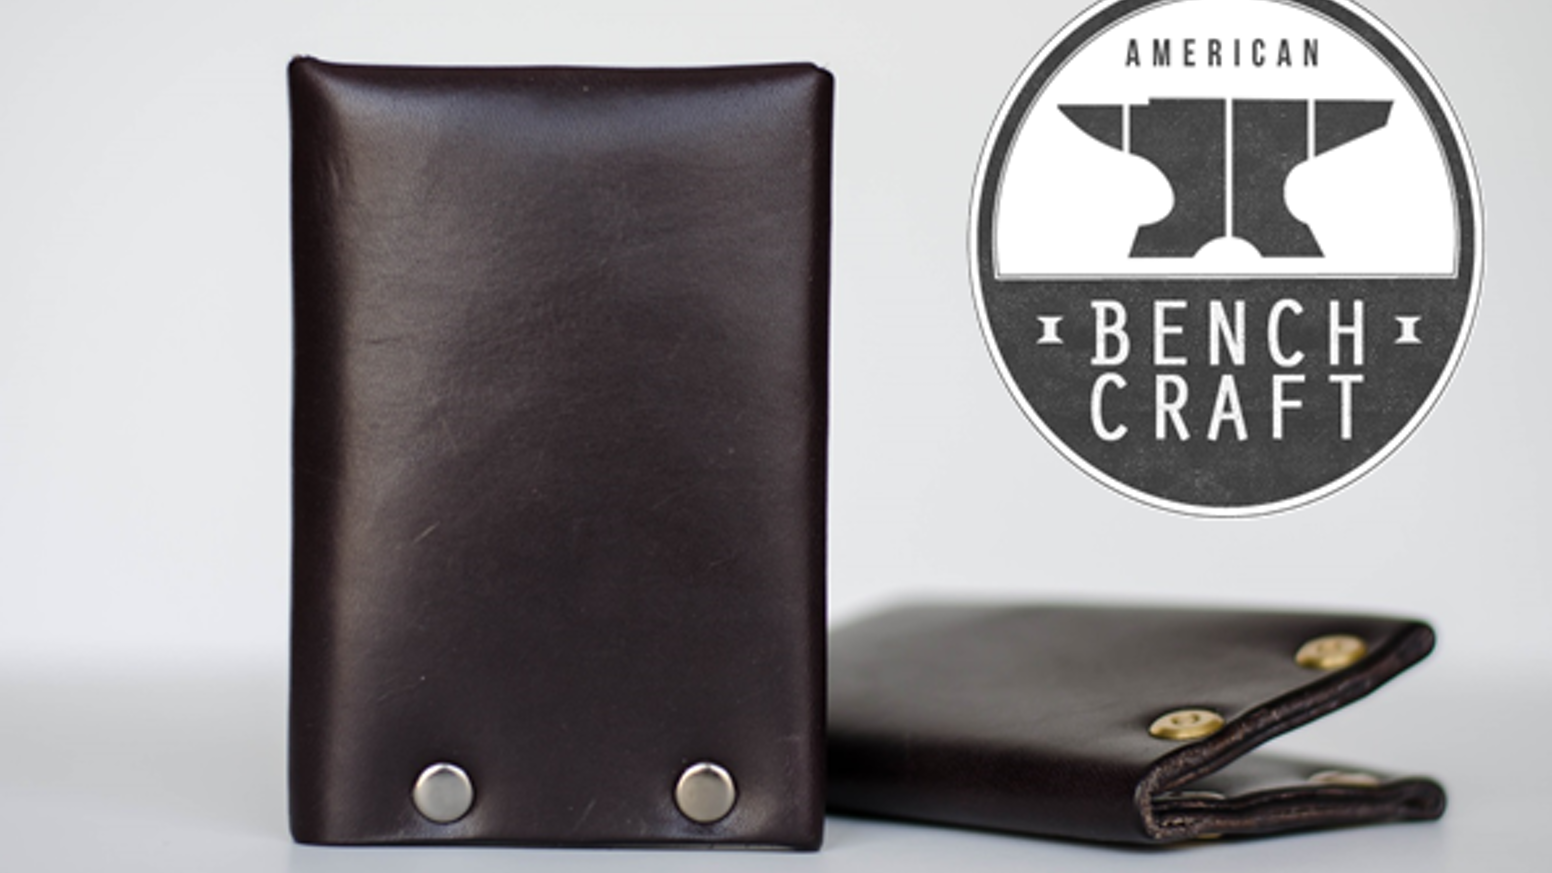 American Bench Craft was founded by two brothers with one goal: to make a better wallet. They created The Hammer Riveted Wallet, and today, they are living the American Dream, designing and manufacturing leather goods in their own old-school workshop.